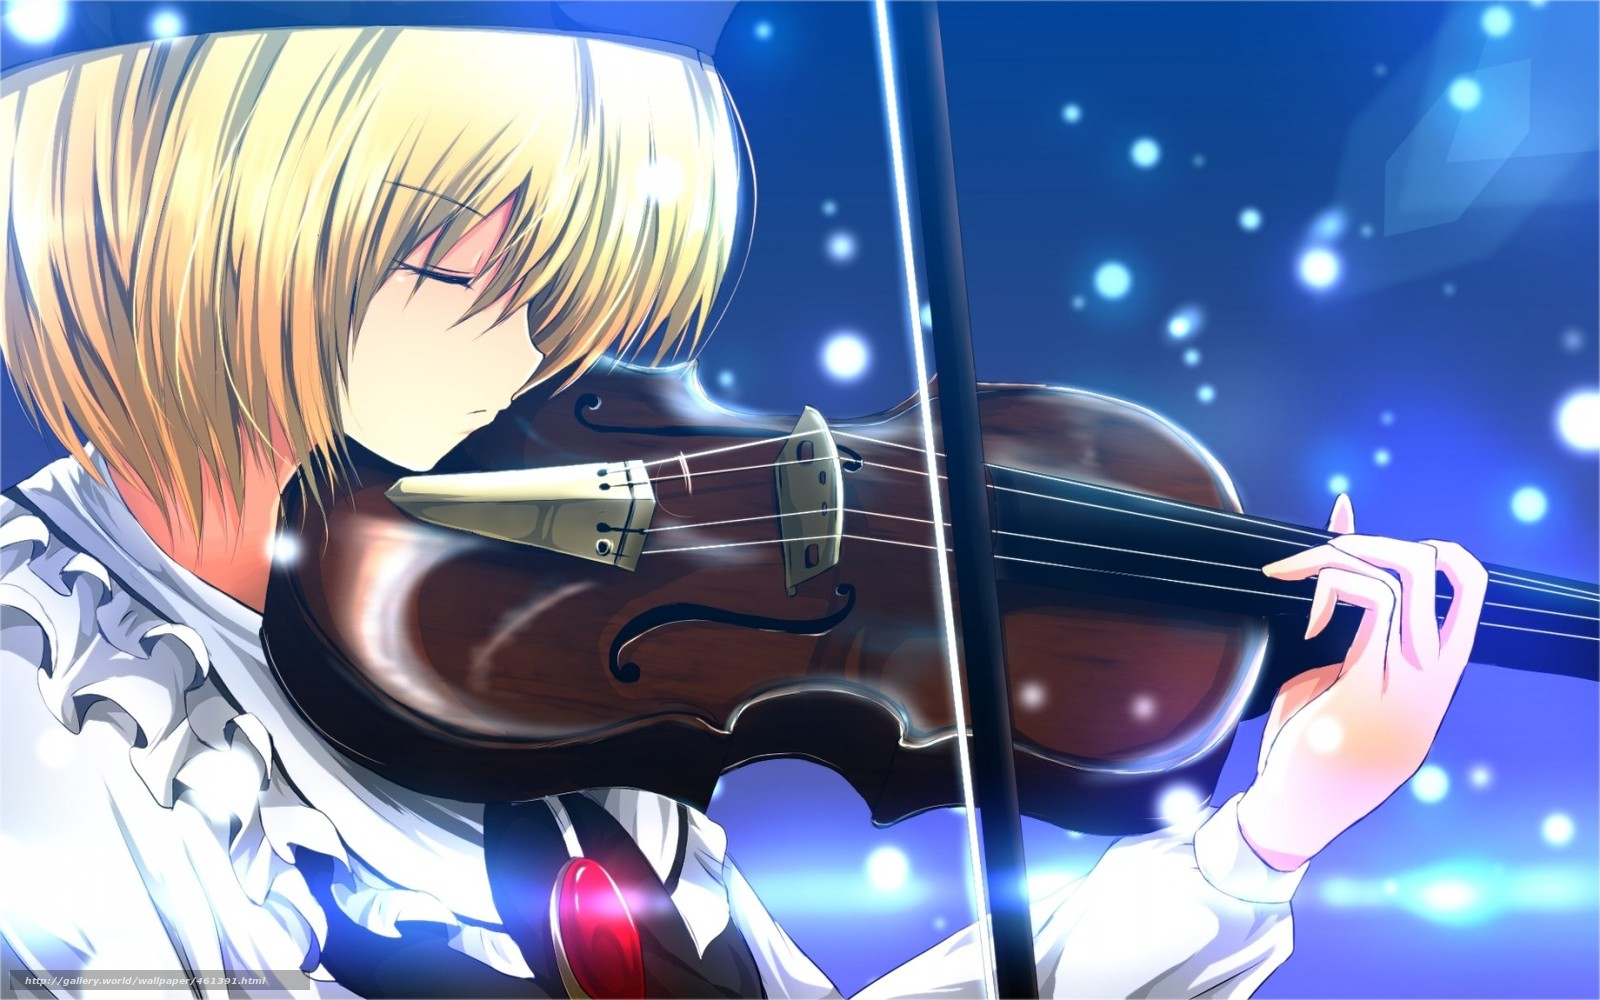 Download Wallpaper Art Musical Instrument Violin Girl Free Desktop In The Resolution 1680x1050 Picture No461391